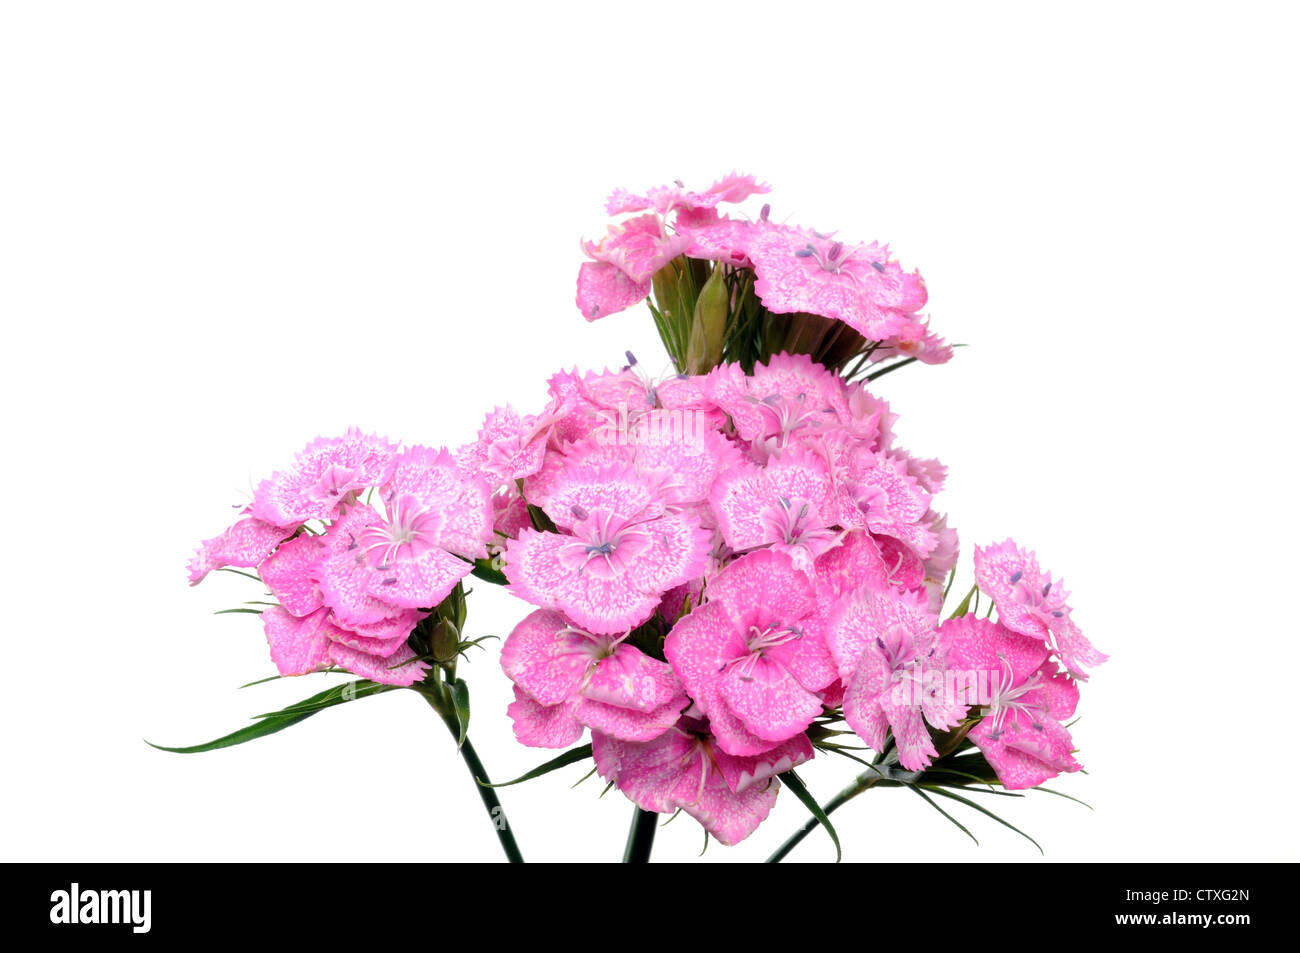 Sweet william flower in front of a white background stock photo sweet william flower in front of a white background mightylinksfo